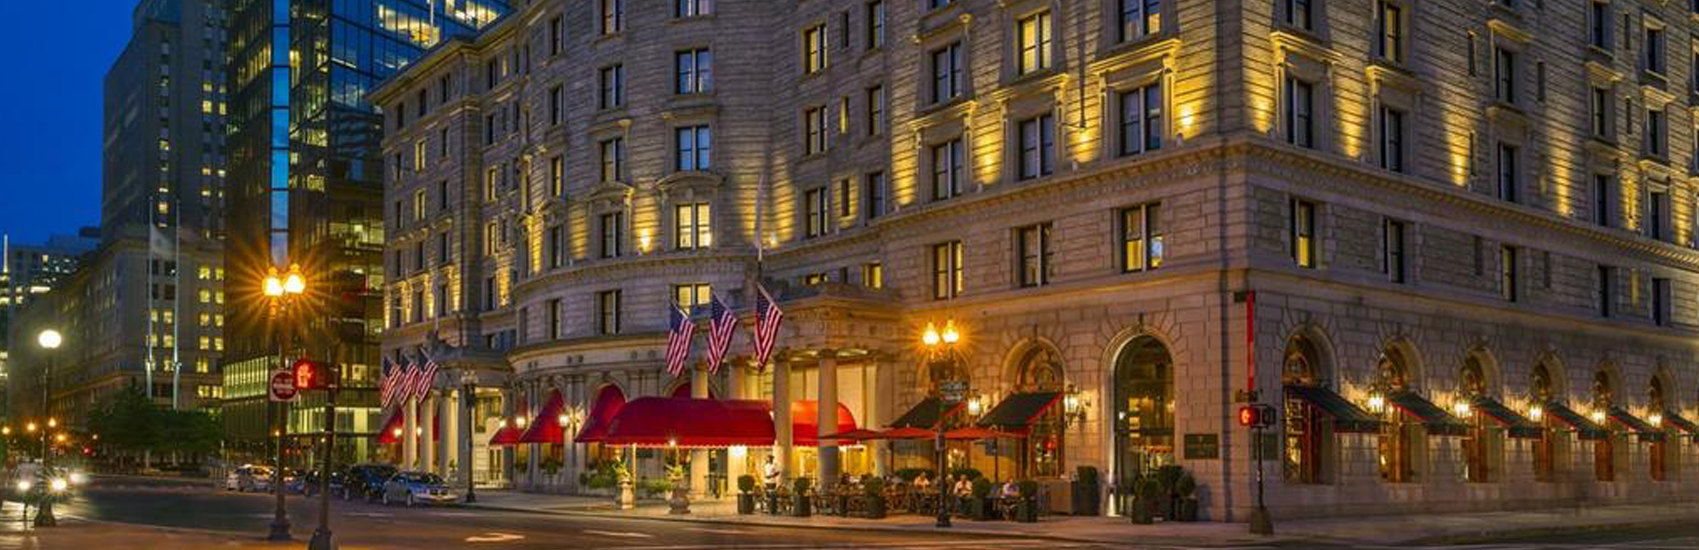 Virtuoso Hotels Throughout the US